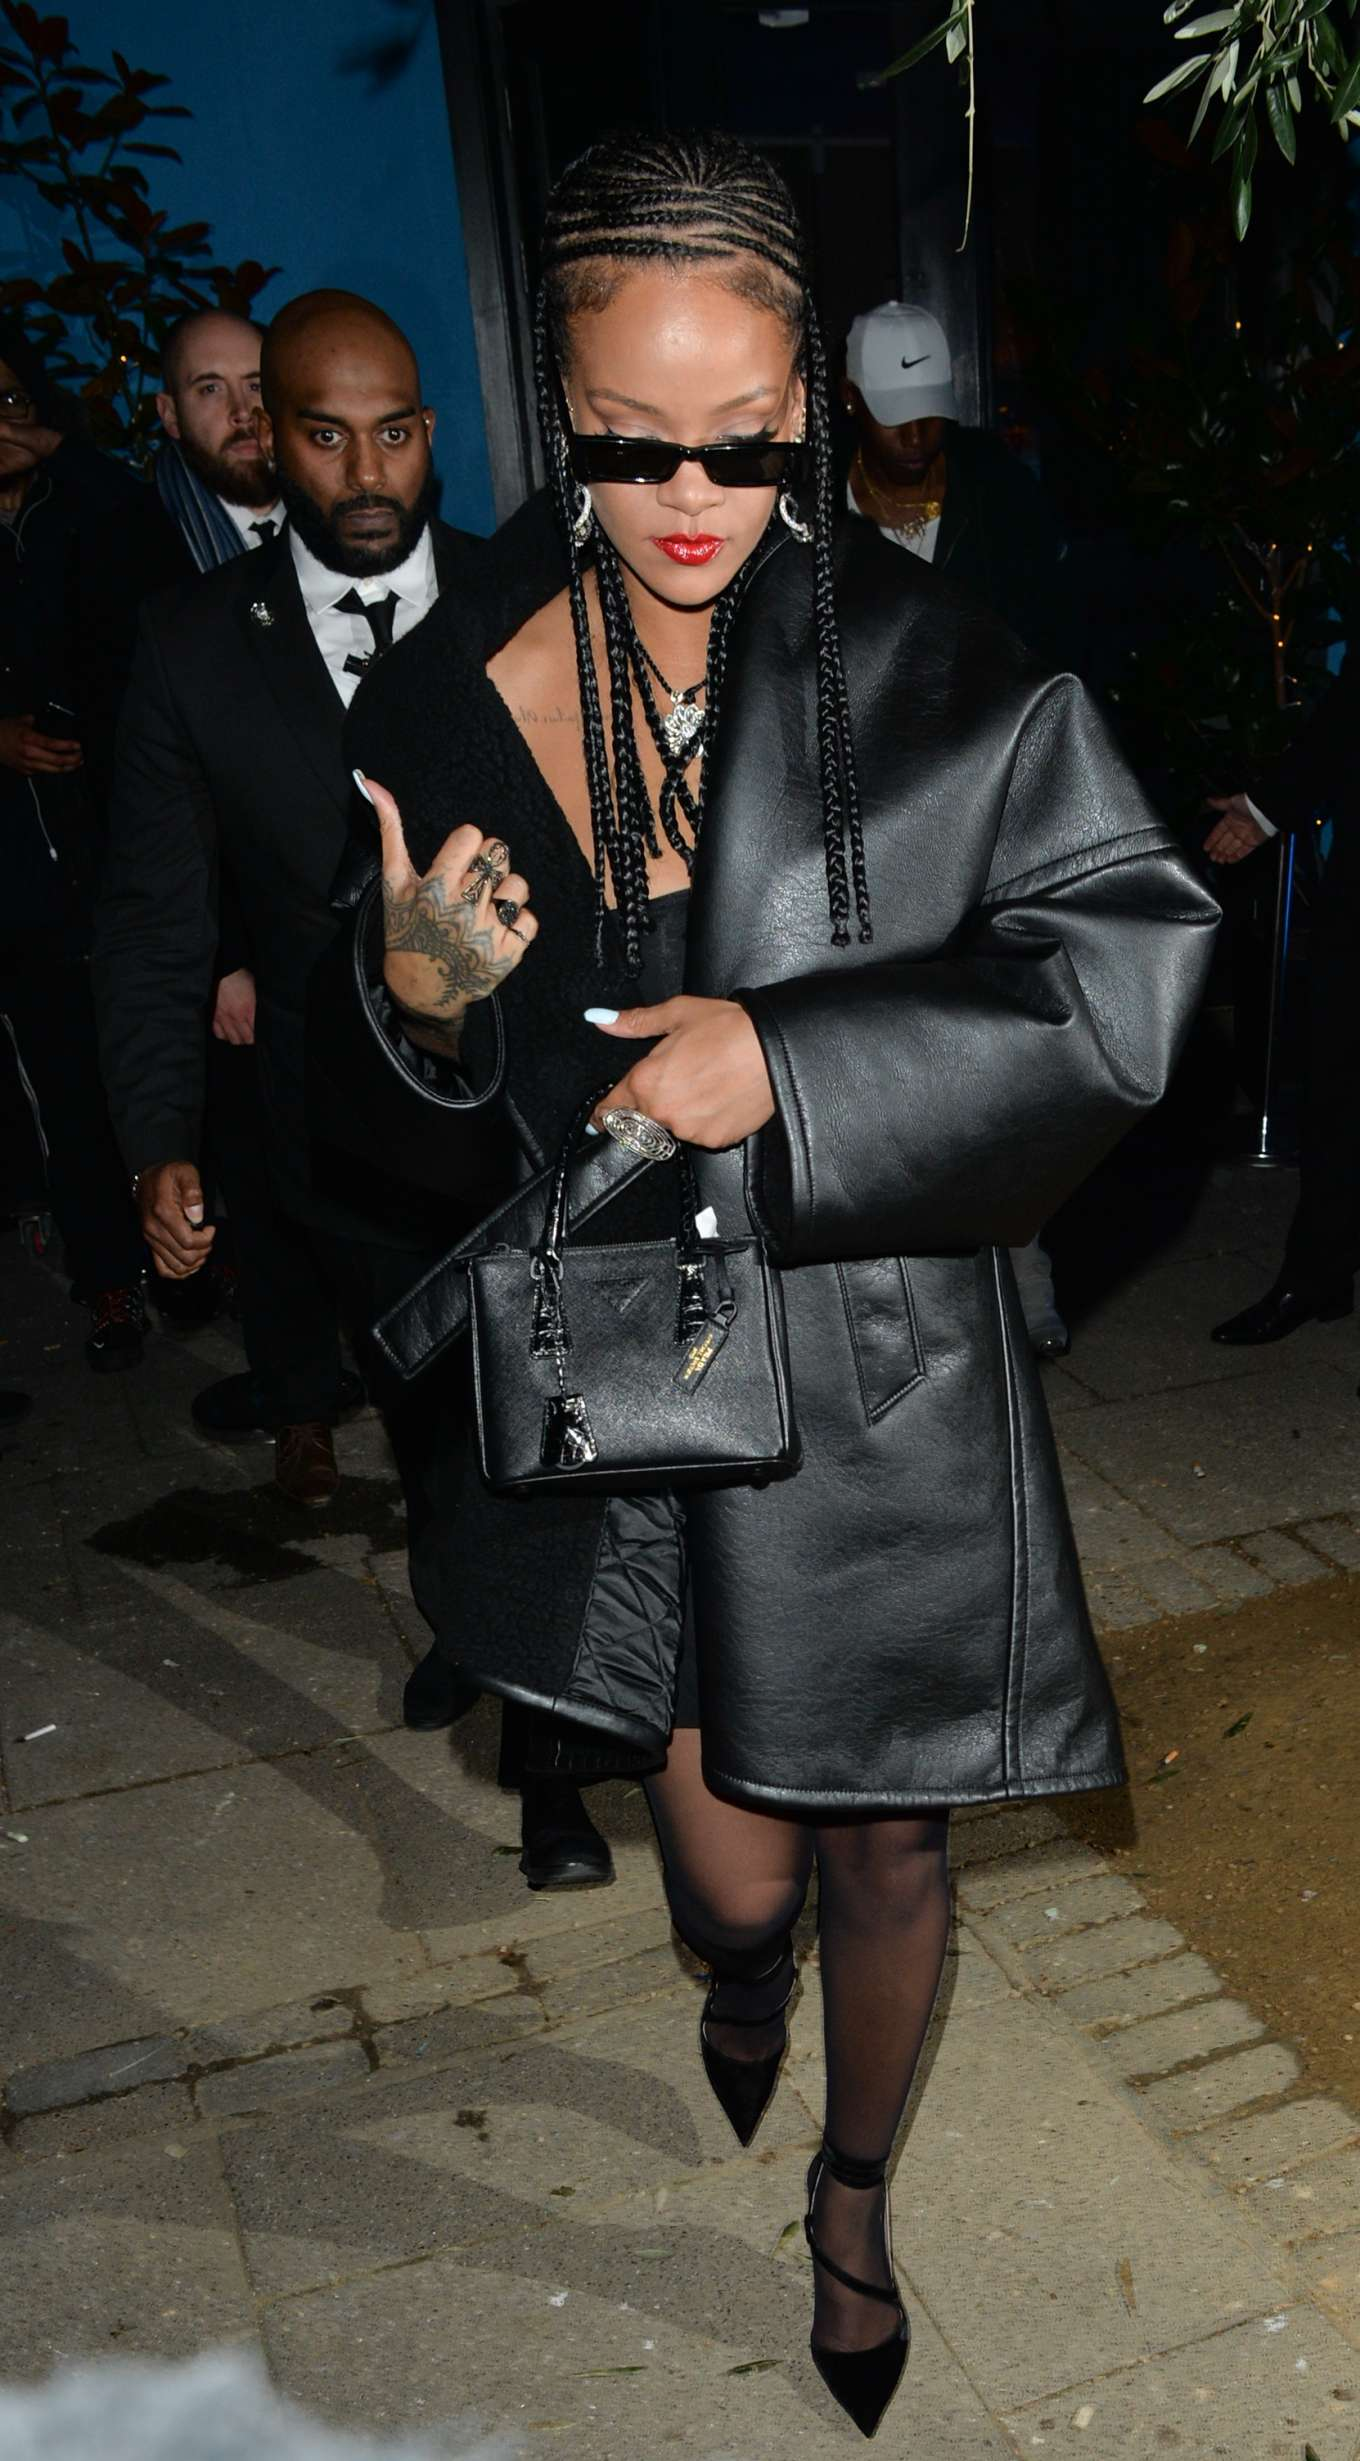 Rihanna - Attending at Fashion Awards After Party in London